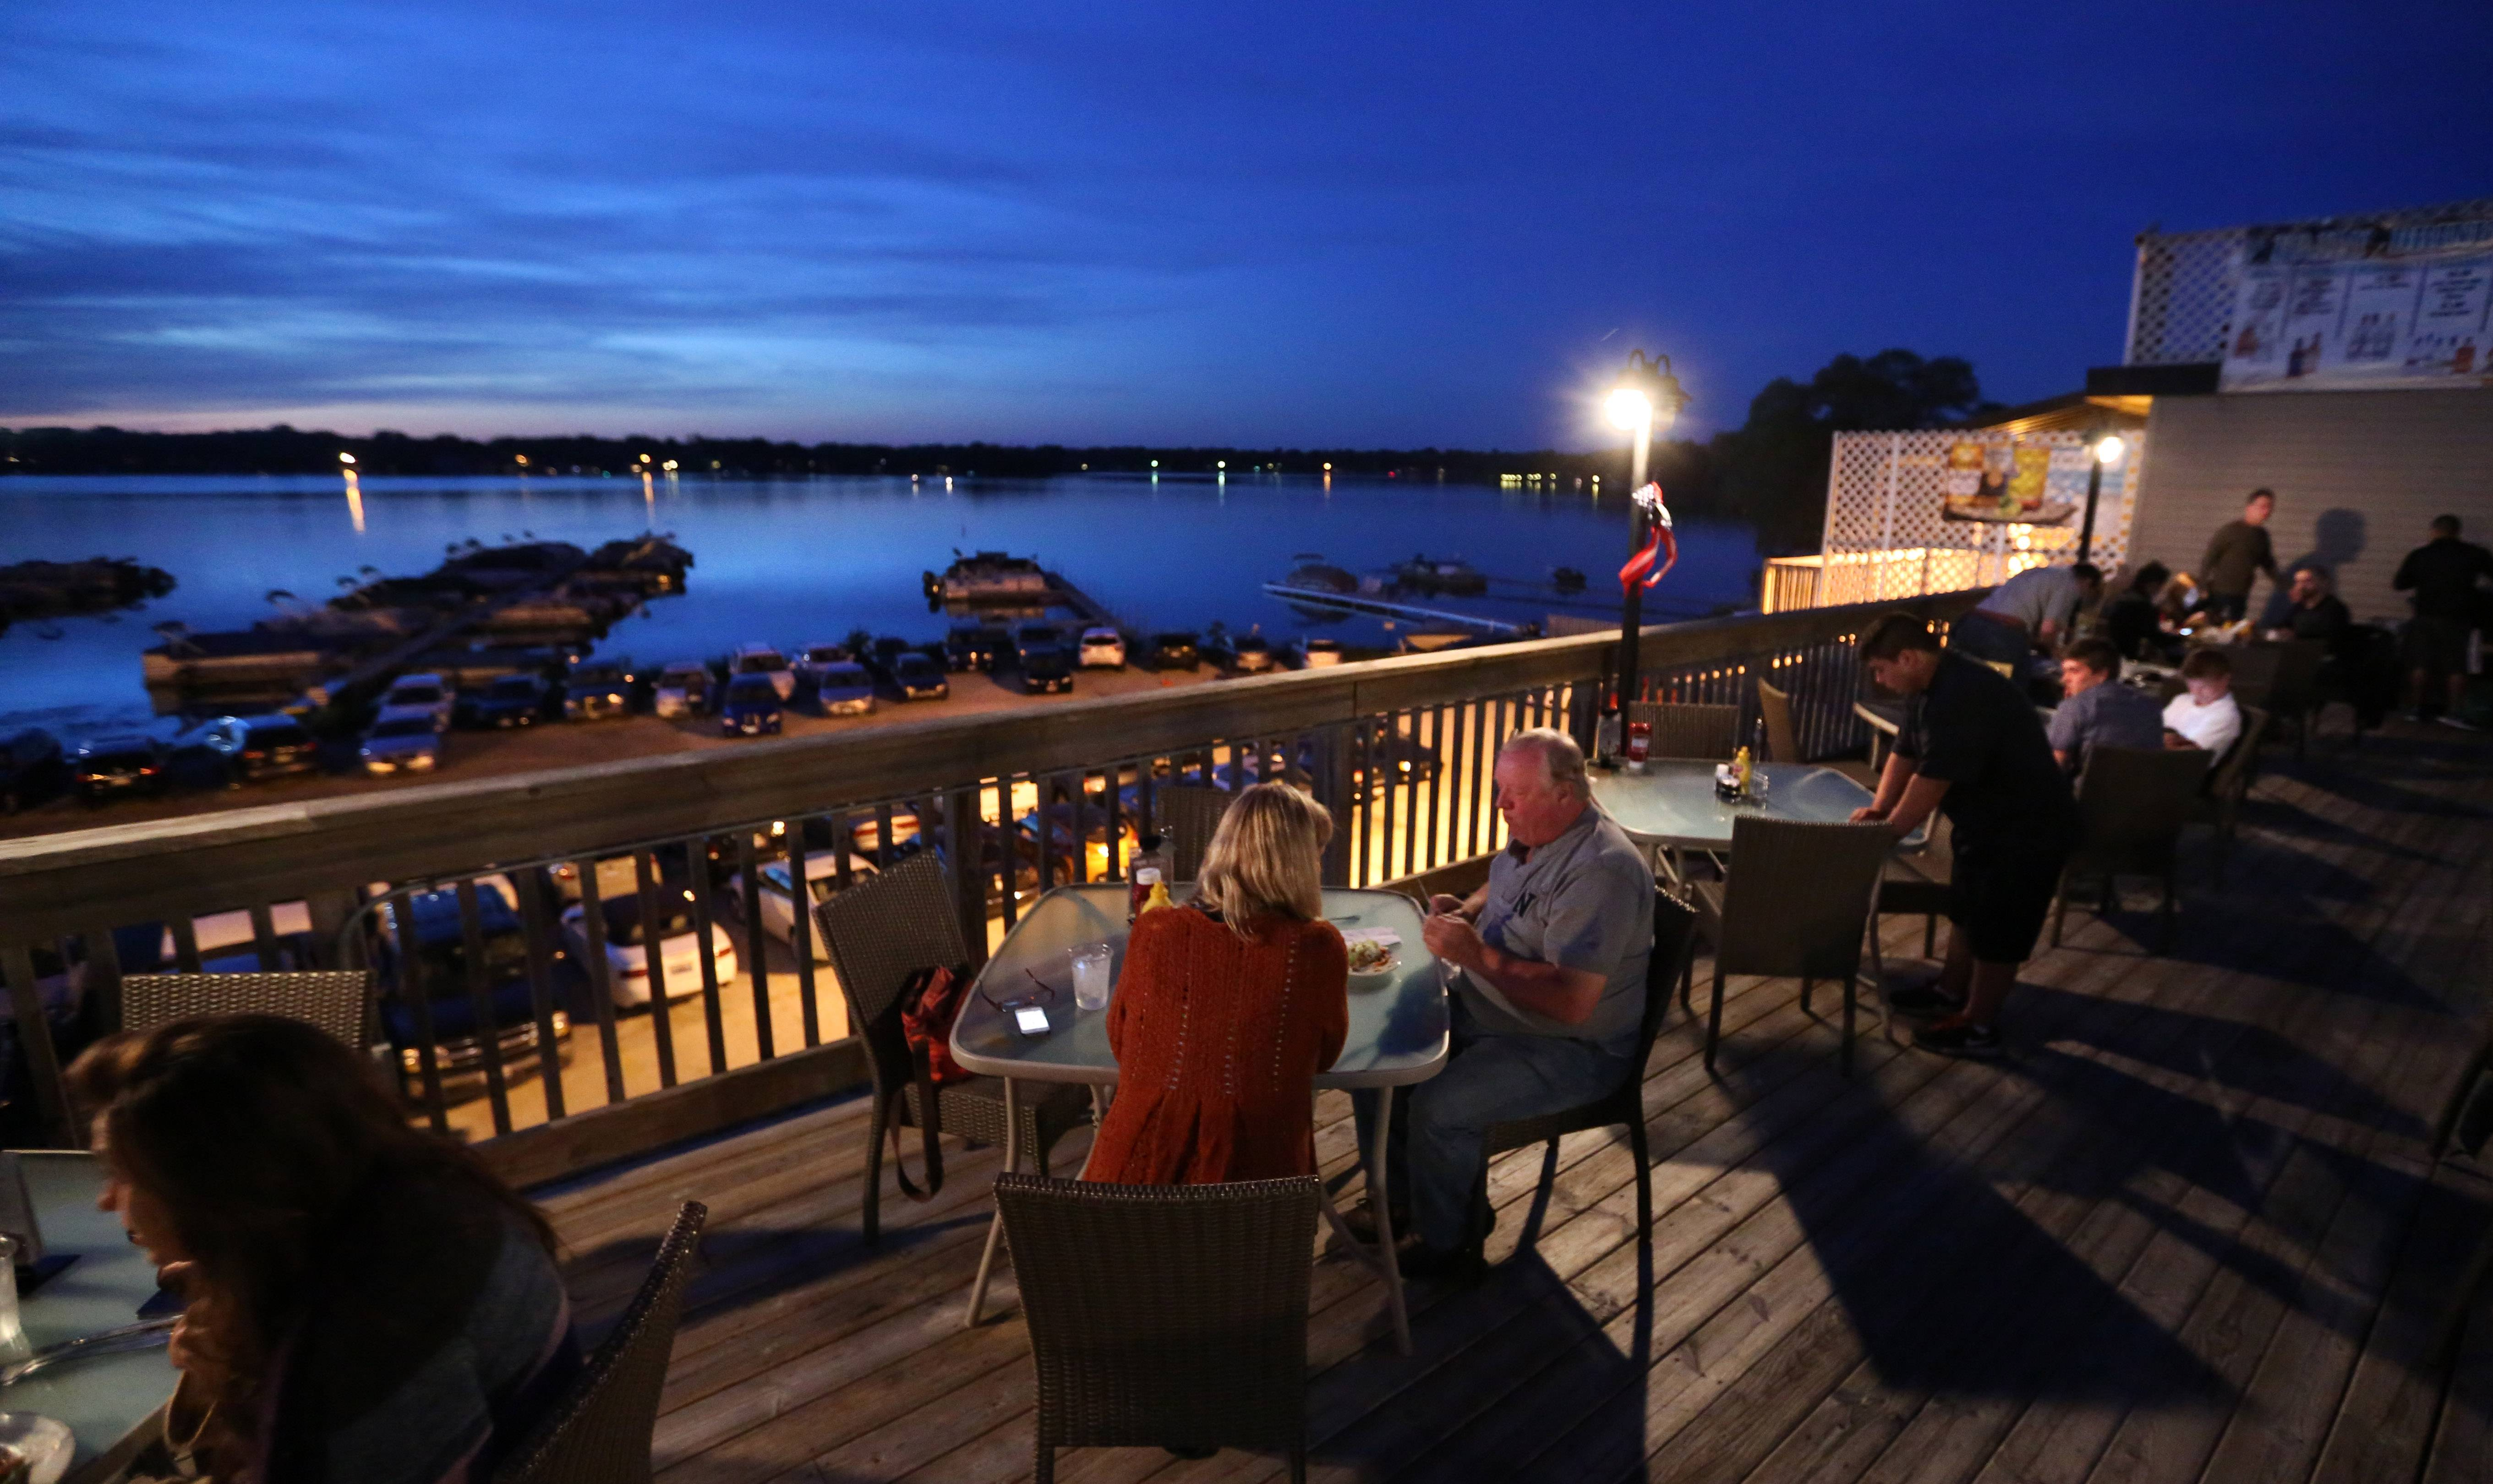 George LeClaire/gleclaire@dailyherald.com  The outdoor dinning area over looking Bangs Lake at Docks Bar and Grill on Friday in Wauconda.